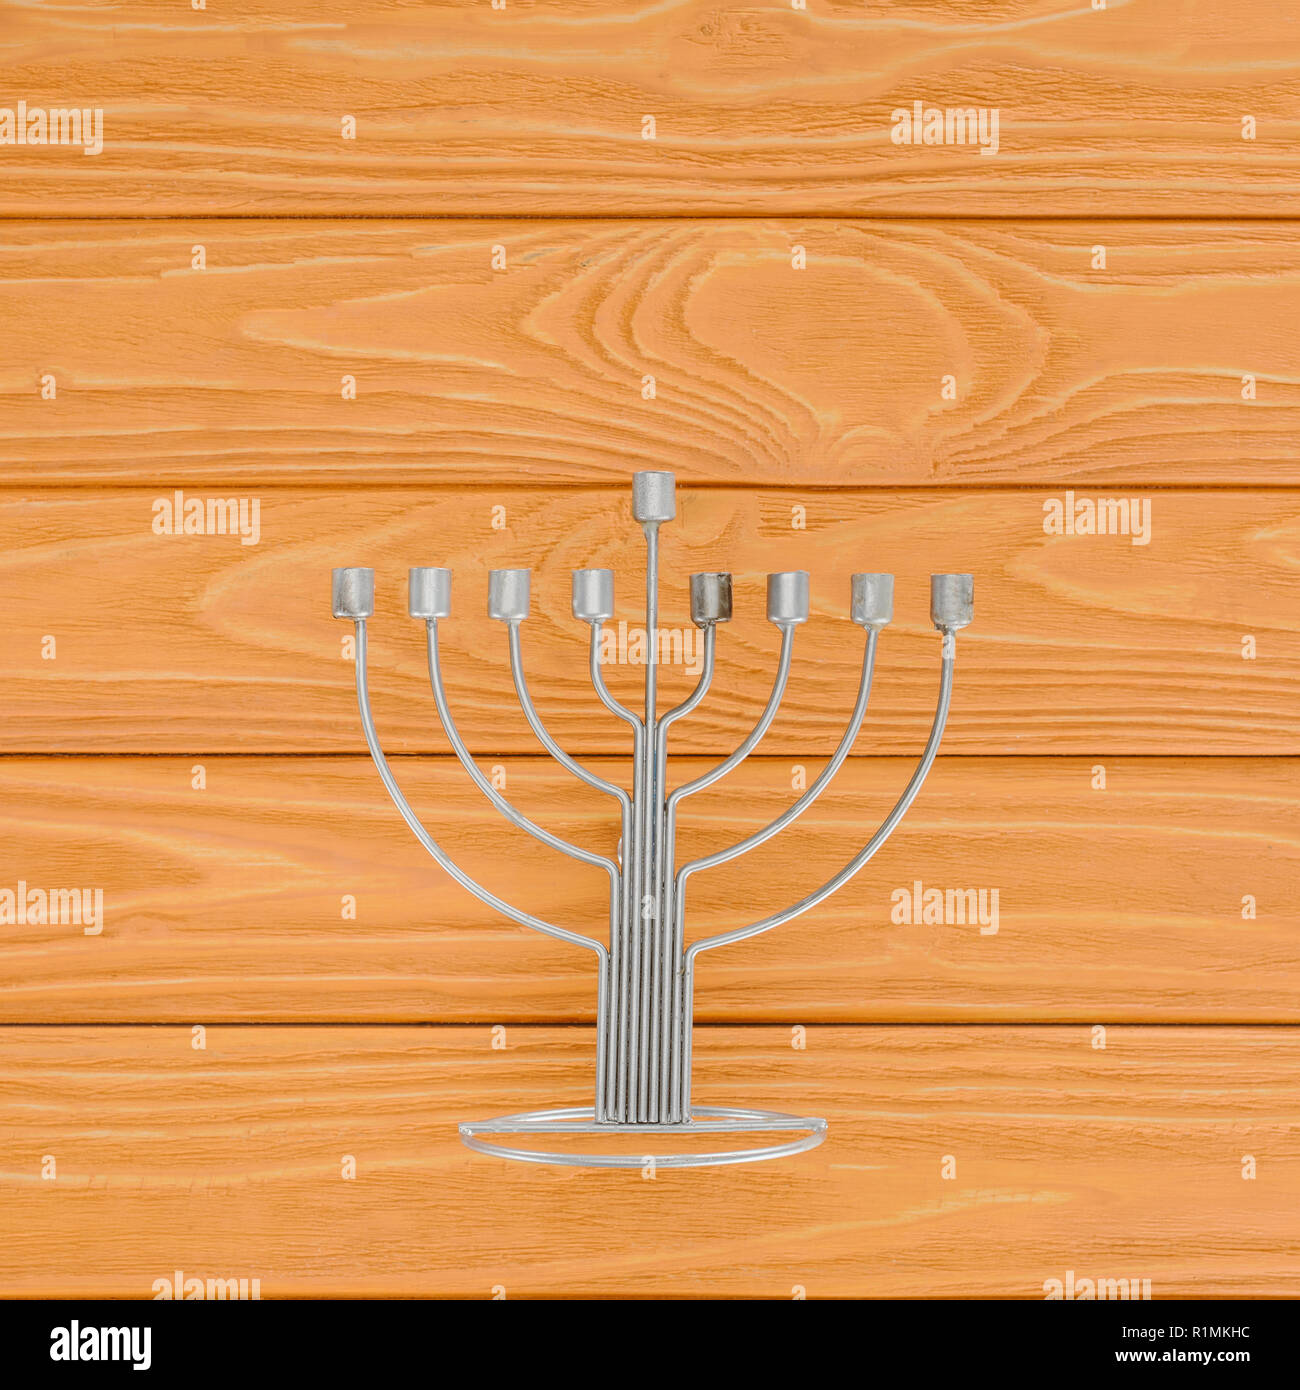 top view of menorah on wooden surface, hannukah holiday concept - Stock Image